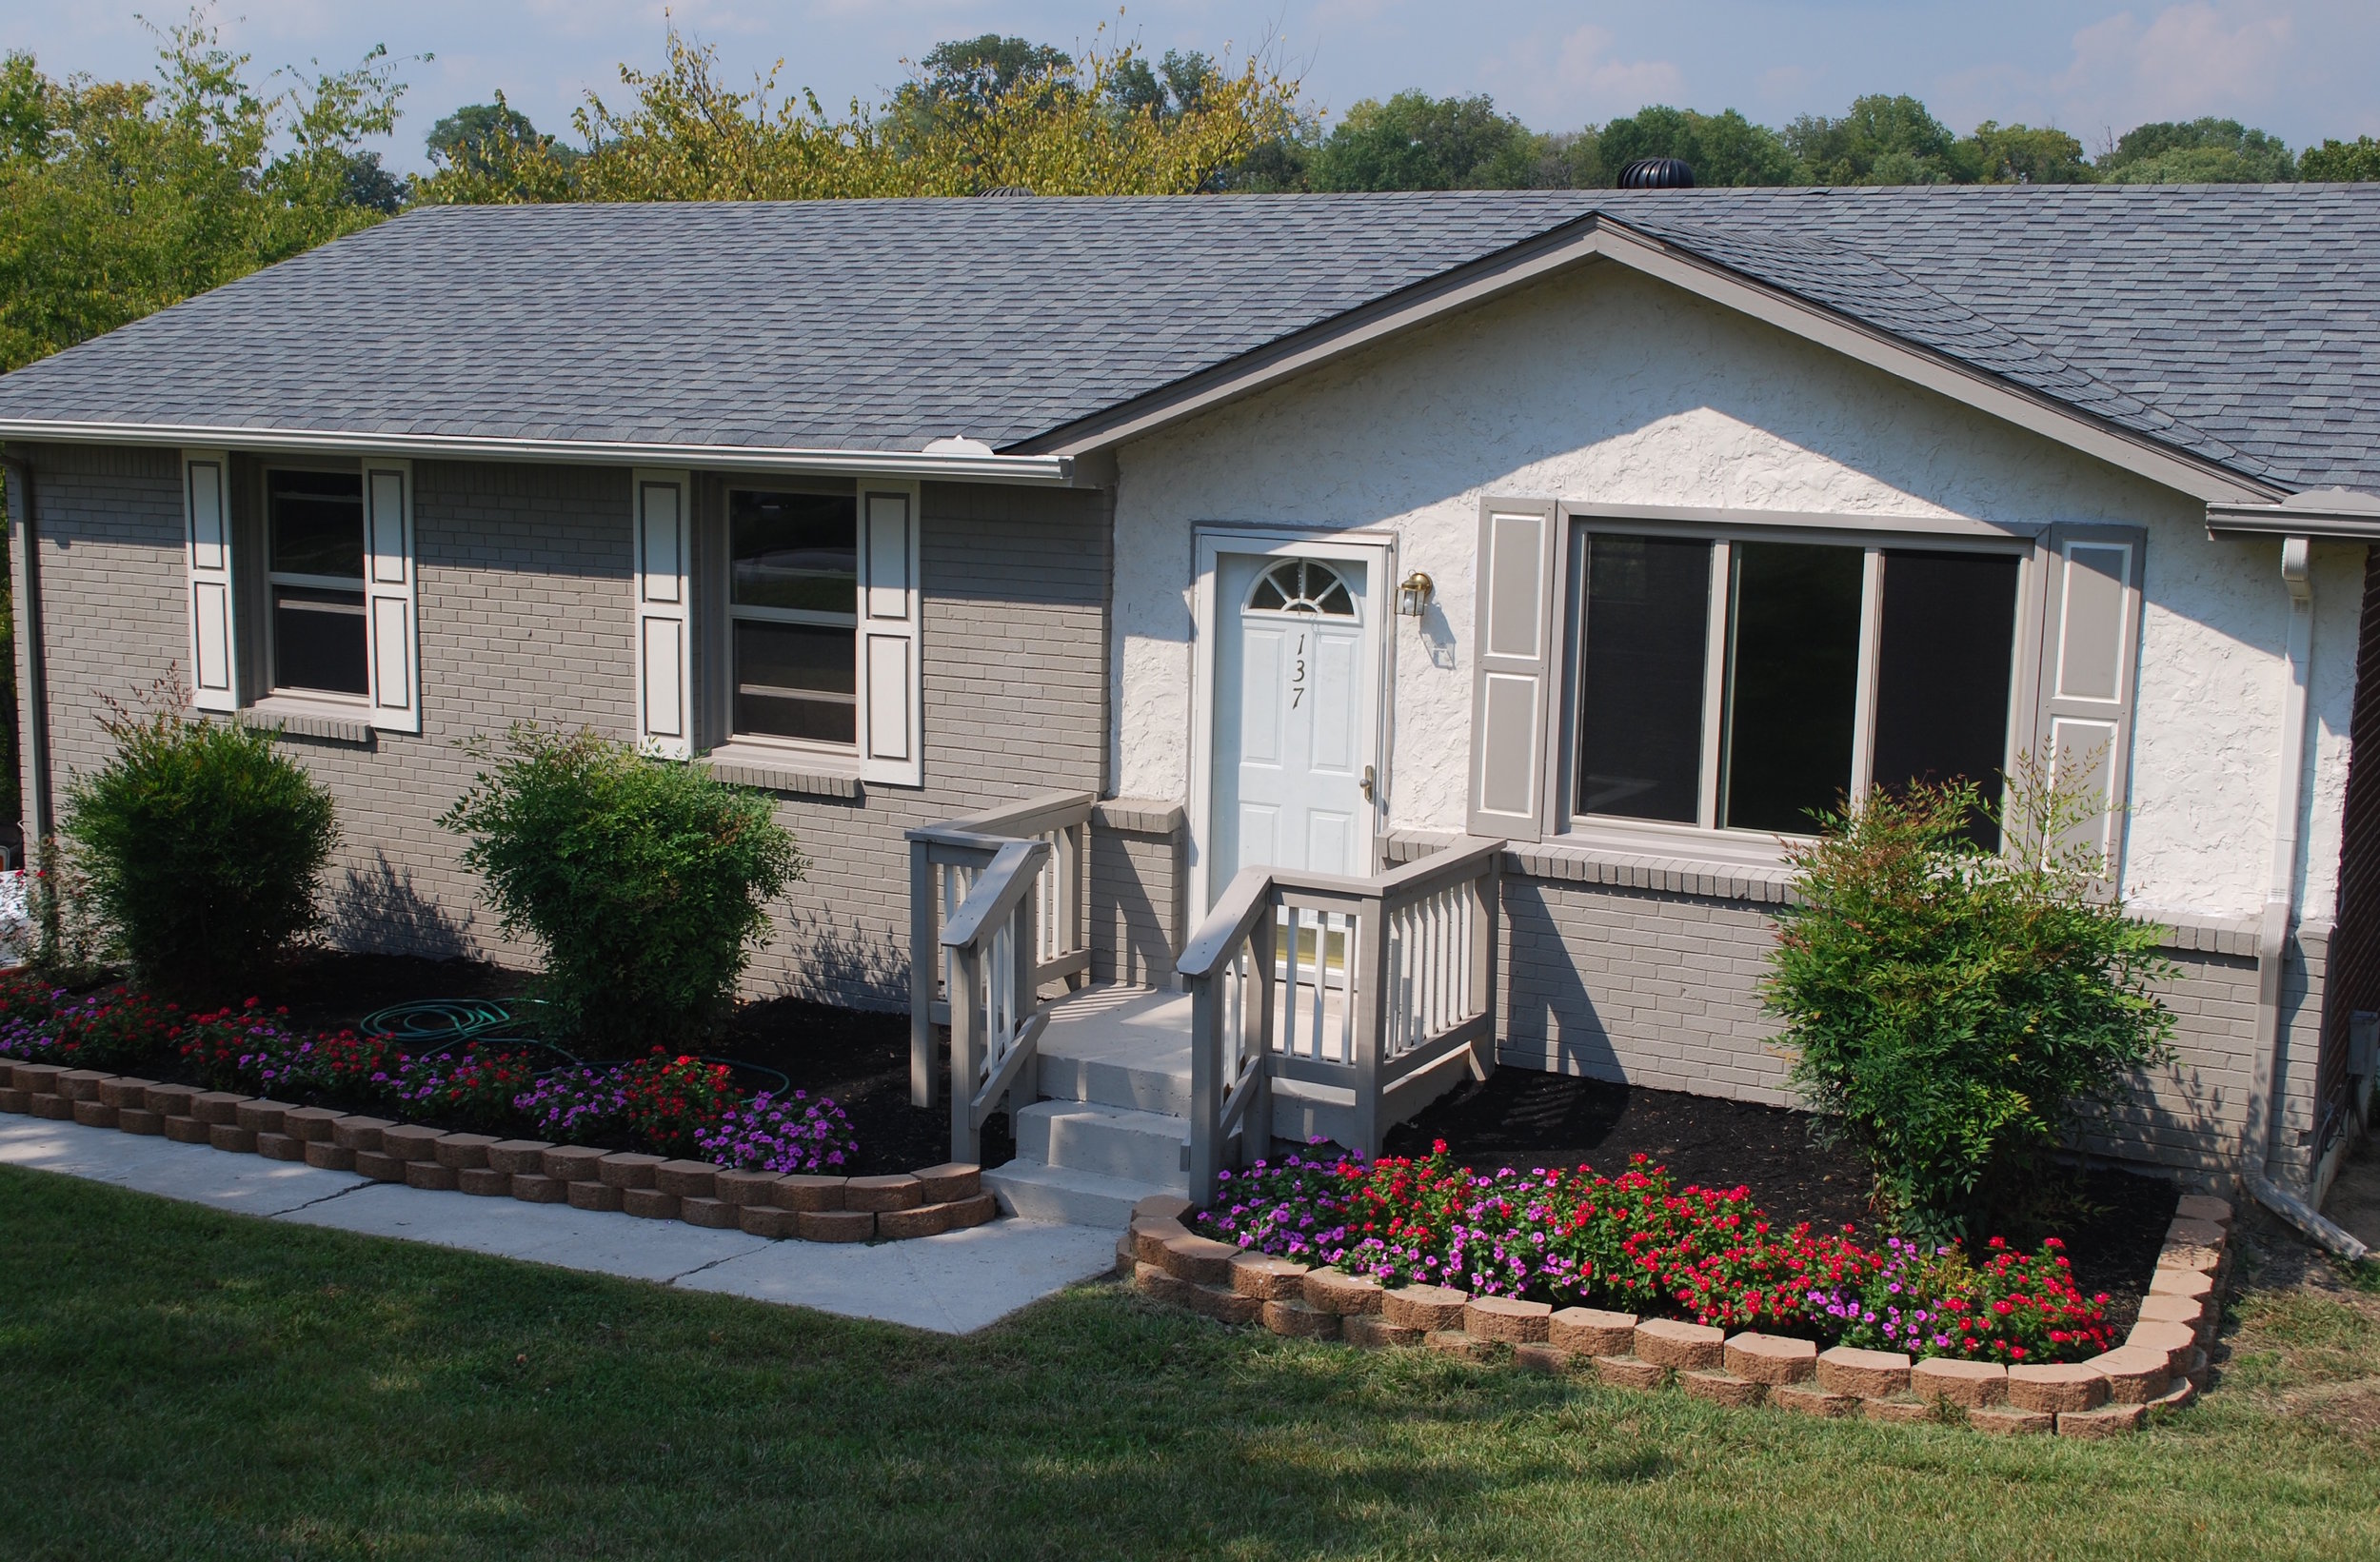 137 Two Valley JUST RENTED (100% REMODELED) HENDERSONVILLE: Single Family Home  3Br 1Ba + Deck + 1 Acre